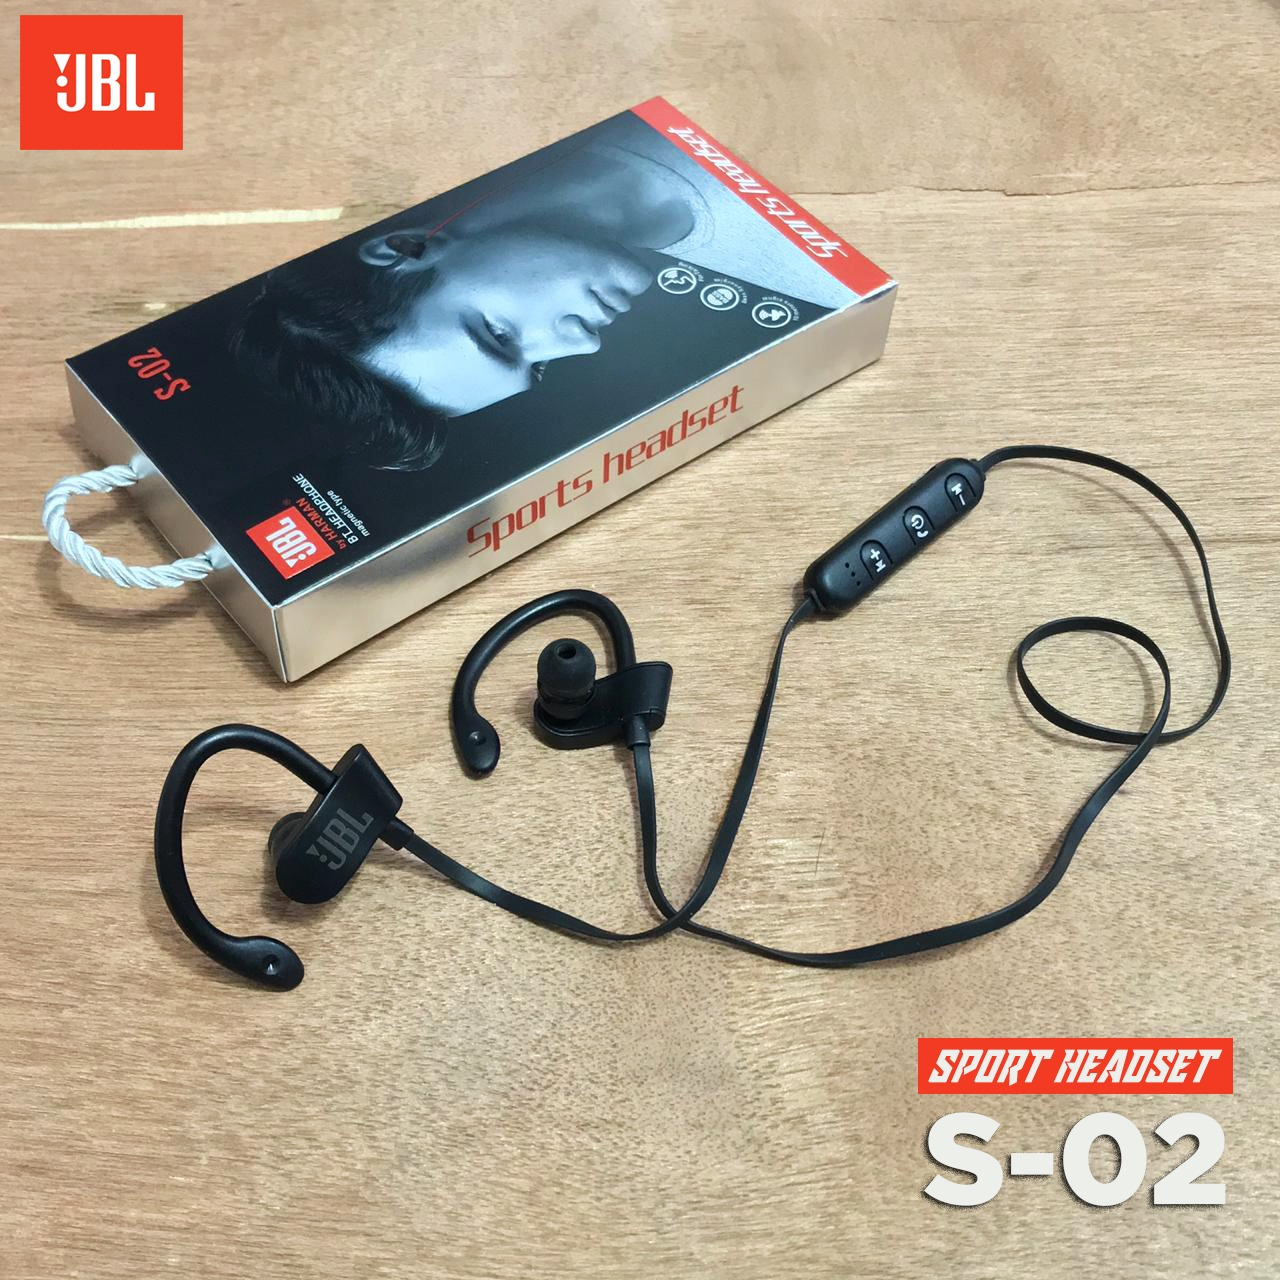 Handsfree Bluetooth JBL S-02